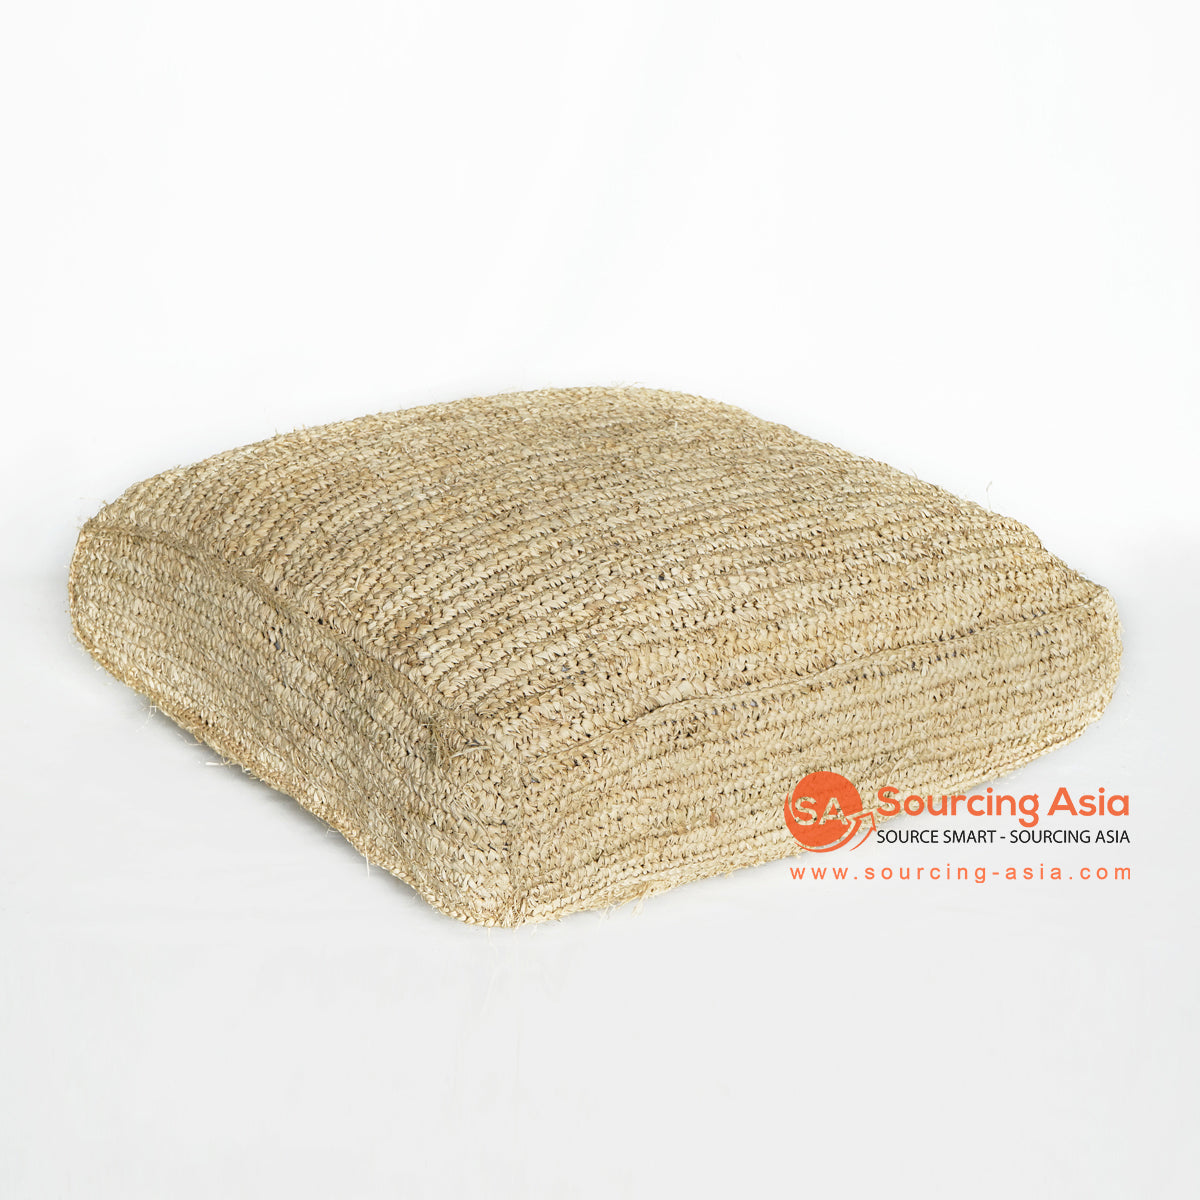 MRC136 NATURAL PALM RAFFIA SQUARE POUFFE